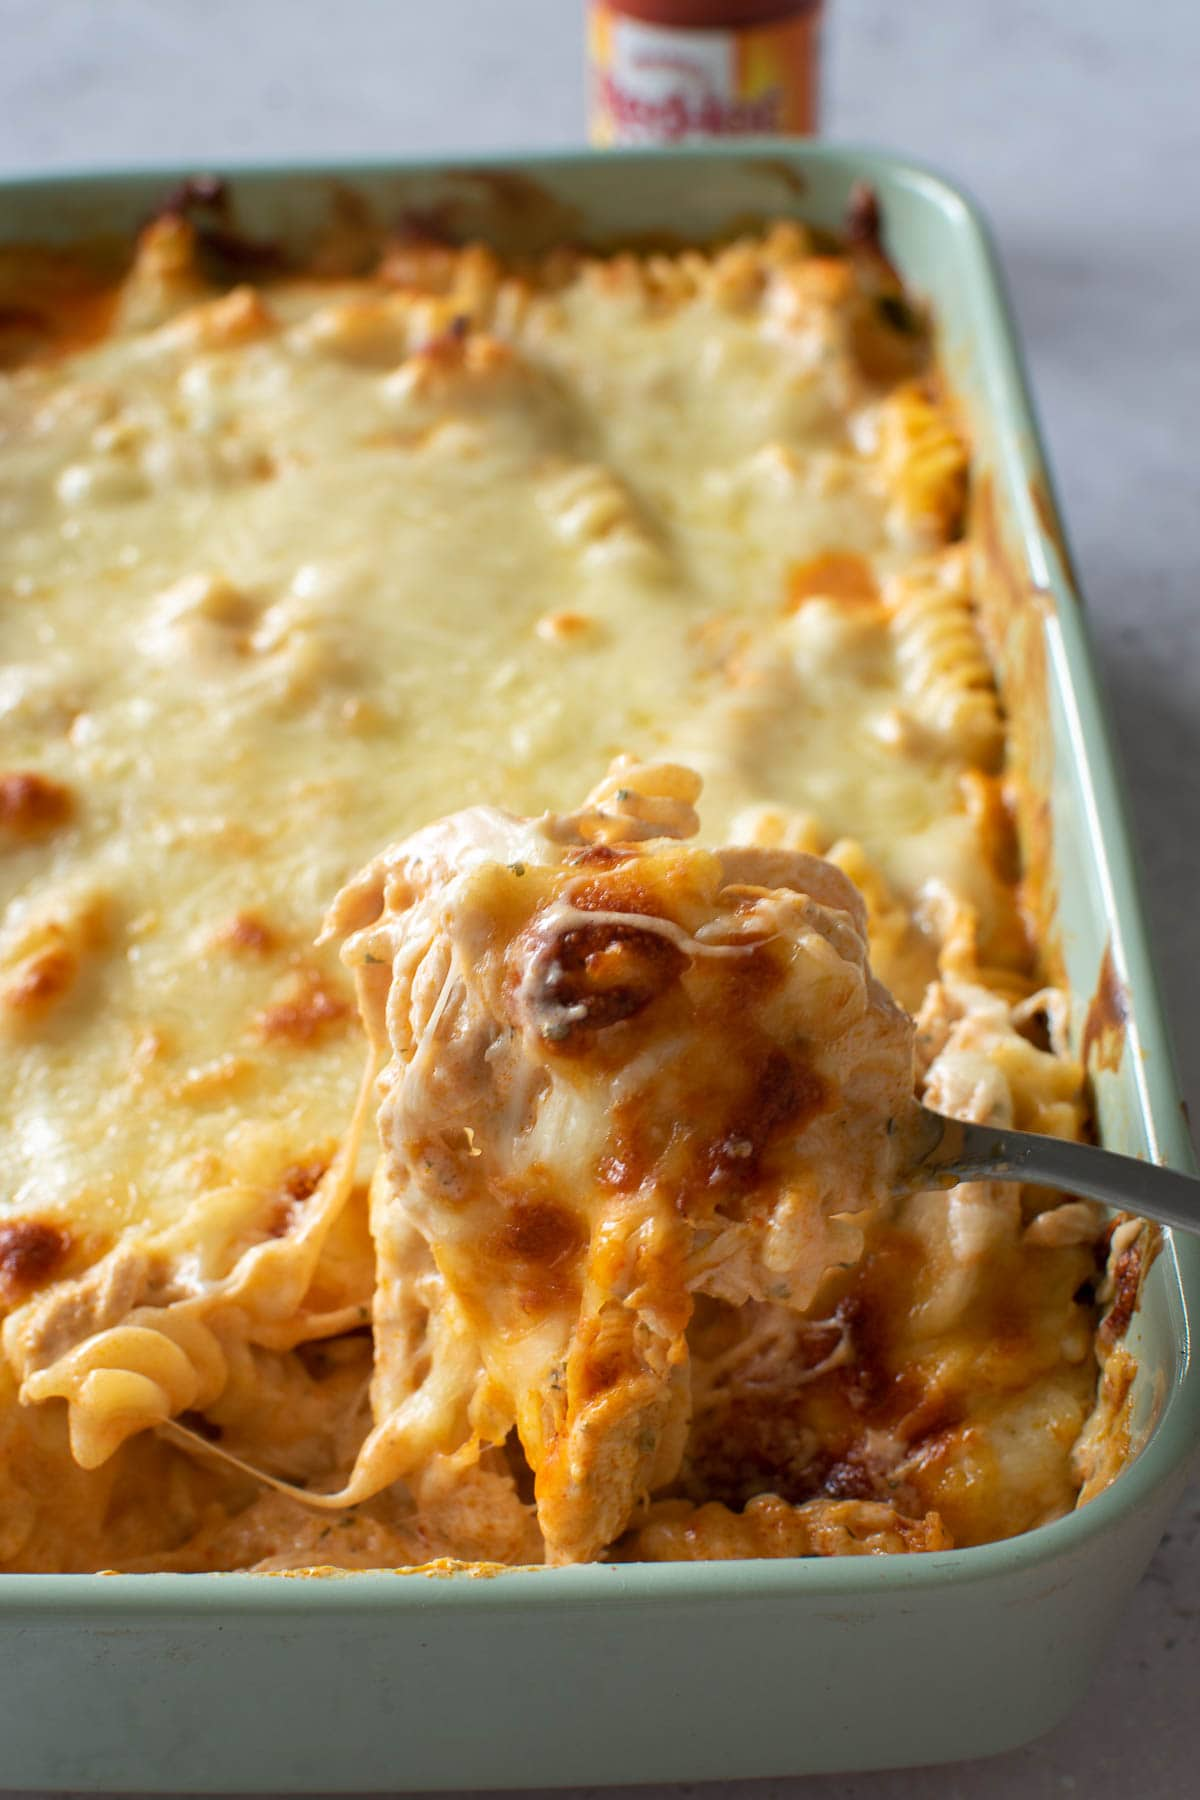 Buffalo chicken pasta bake, with a spoon lifting up a cheesy piece.